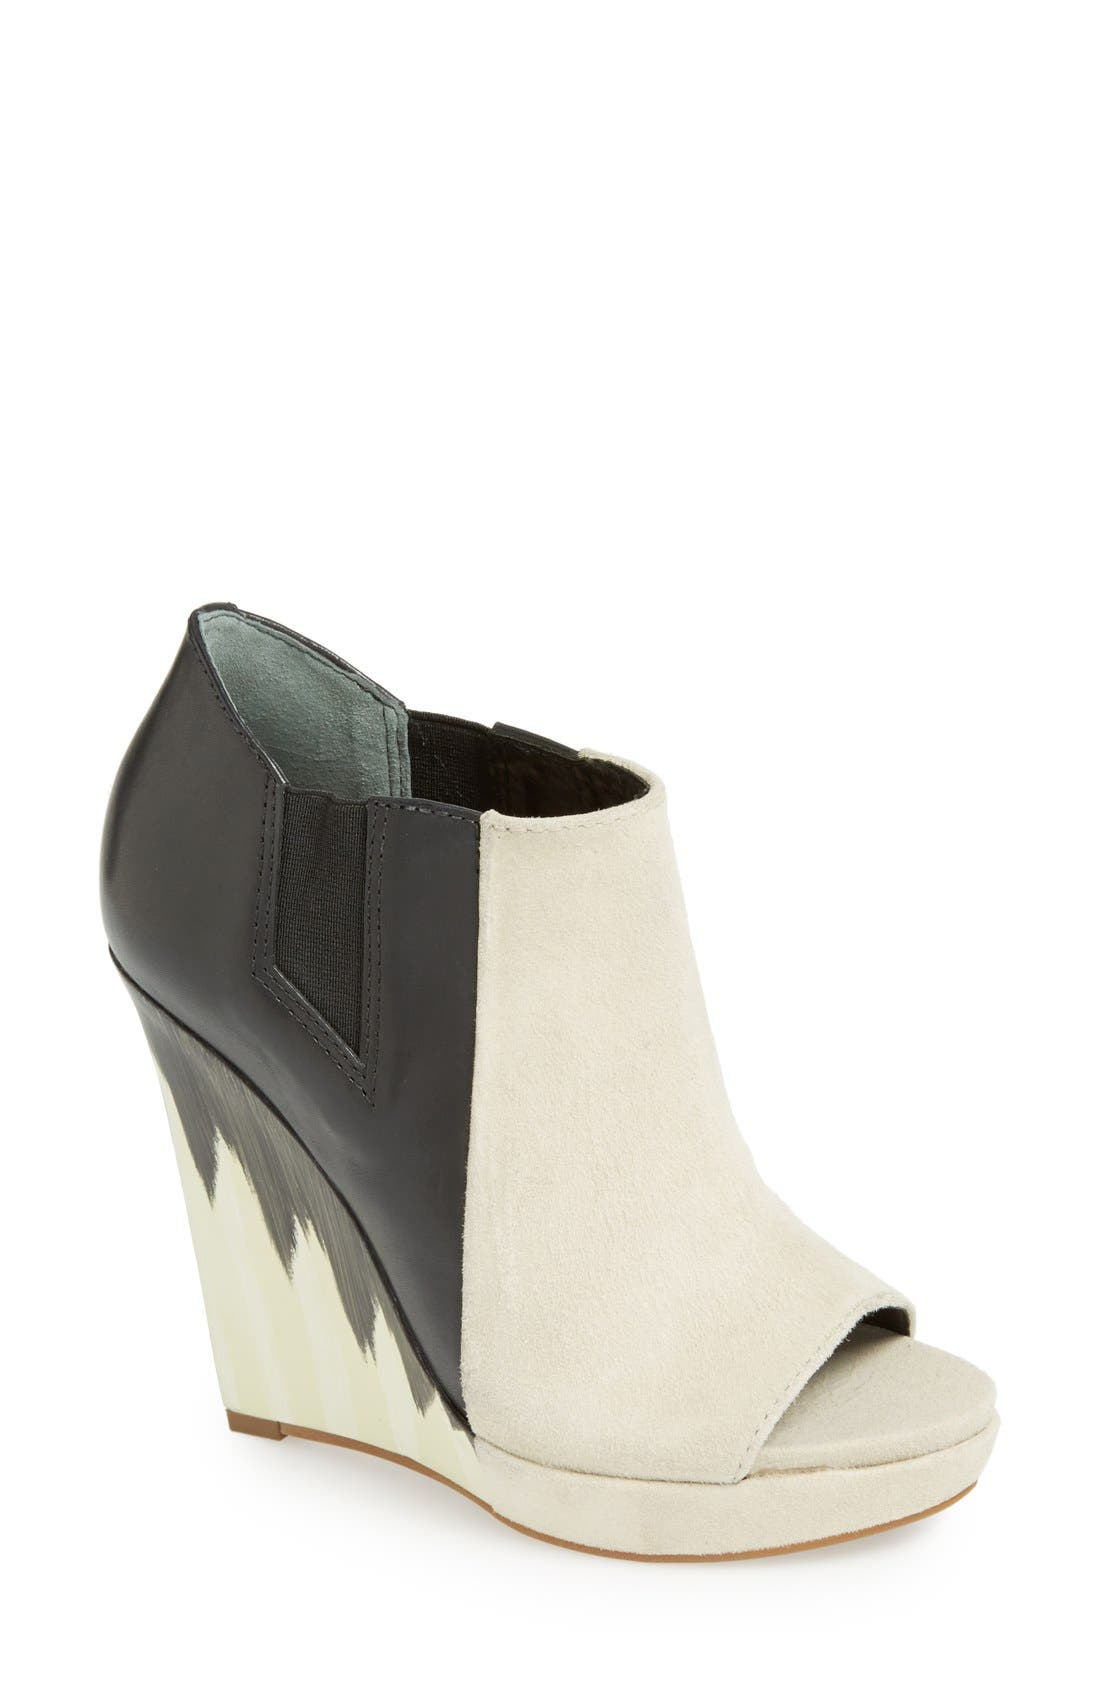 Main Image - Derek Lam 10 Crosby 'Gerri' Leather & Suede Open Toe Wedge Bootie